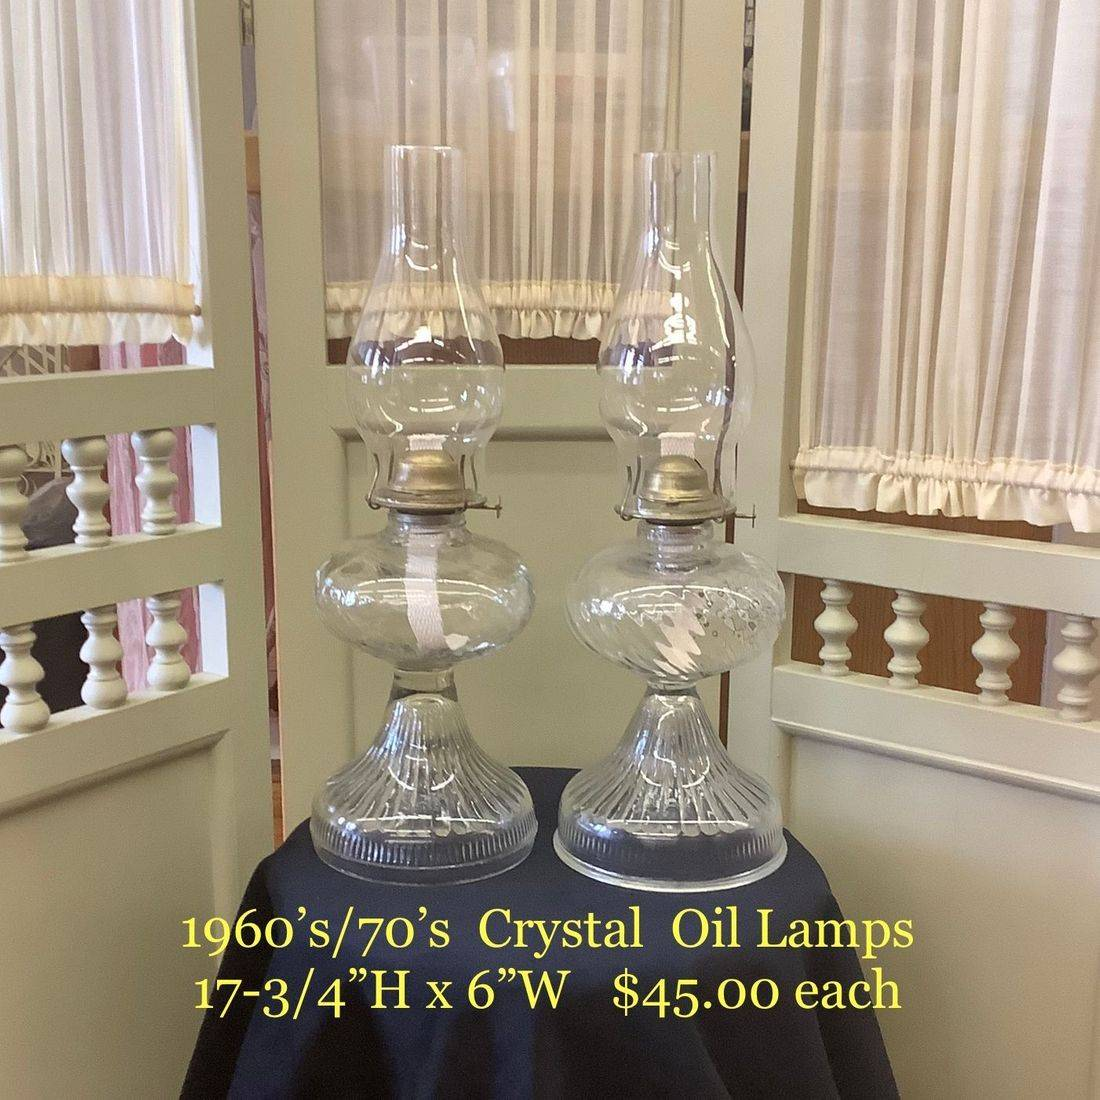 """1960's/70's Crystal Oil Lamps  17-3/4""""H x 6""""W  $45.00 each"""